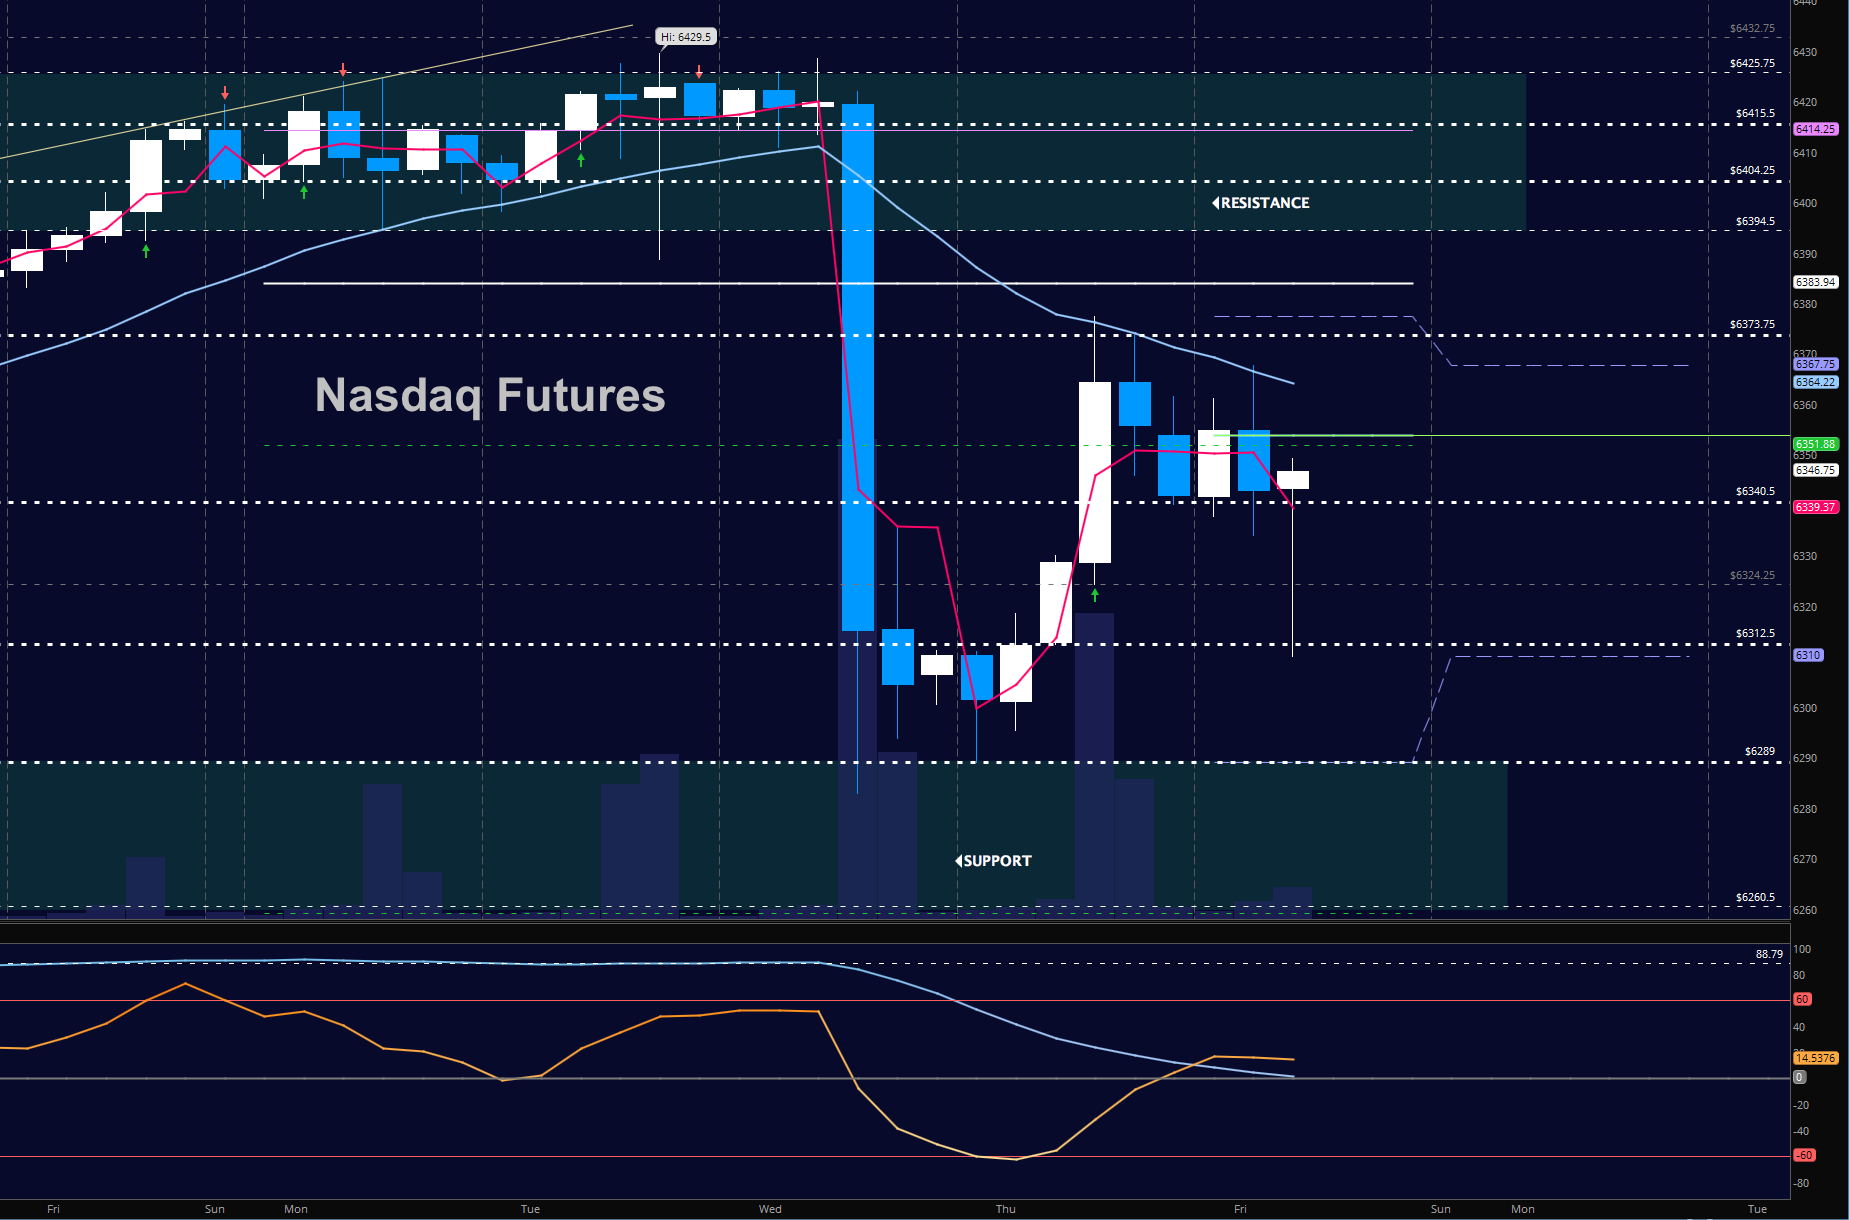 nasdaq futures stock market trading december 1 chart_news_update_investing